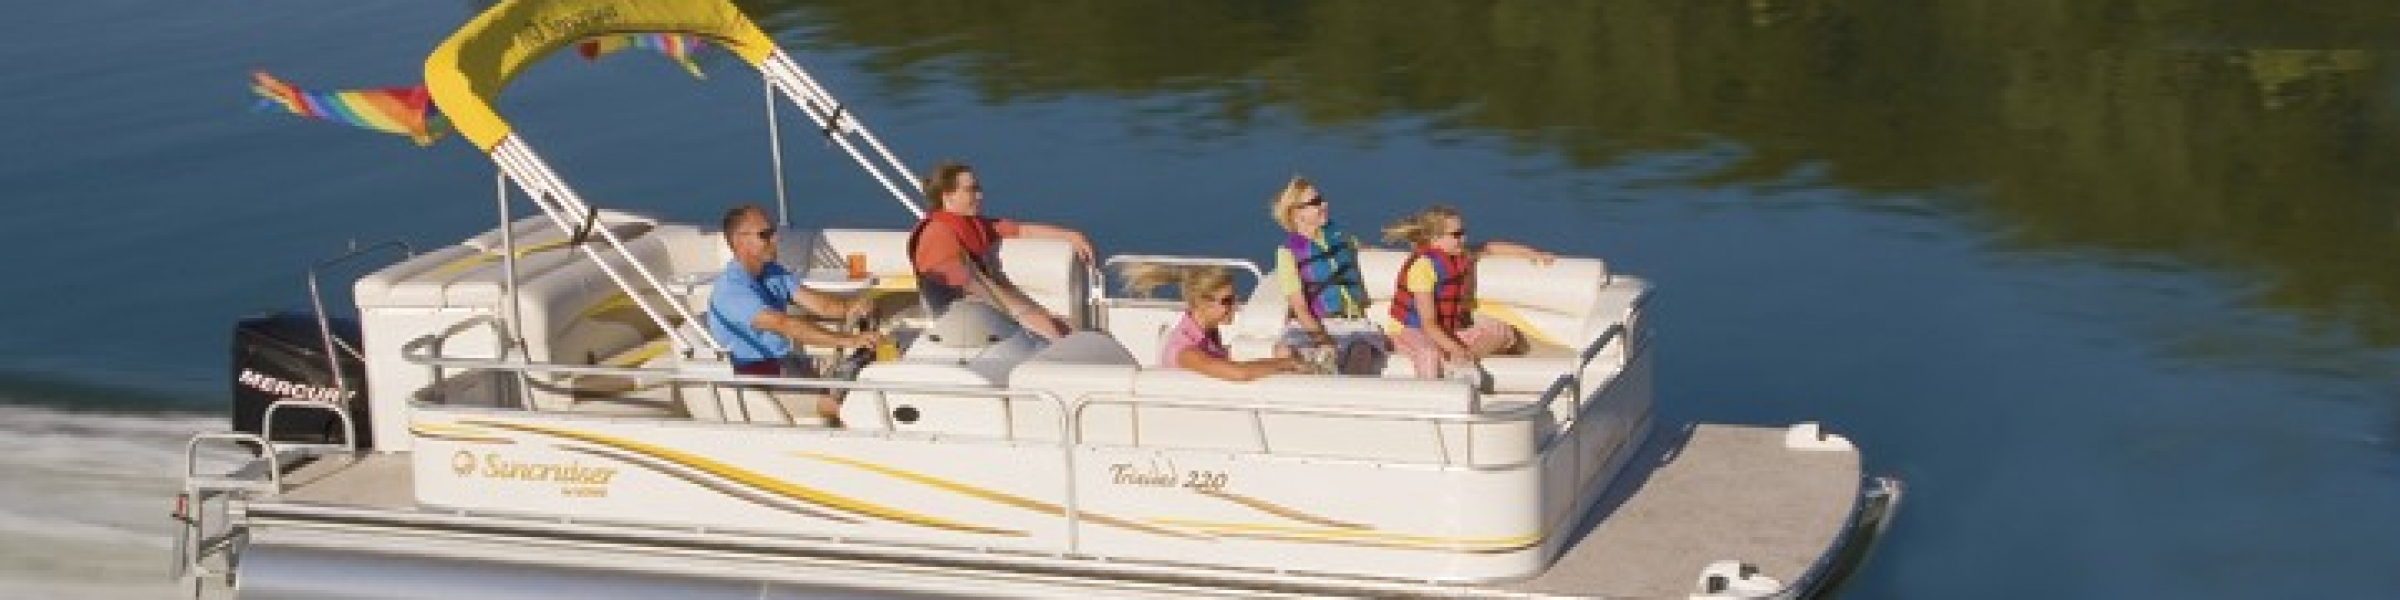 bass-lake-boat-rentals-slideshow-002